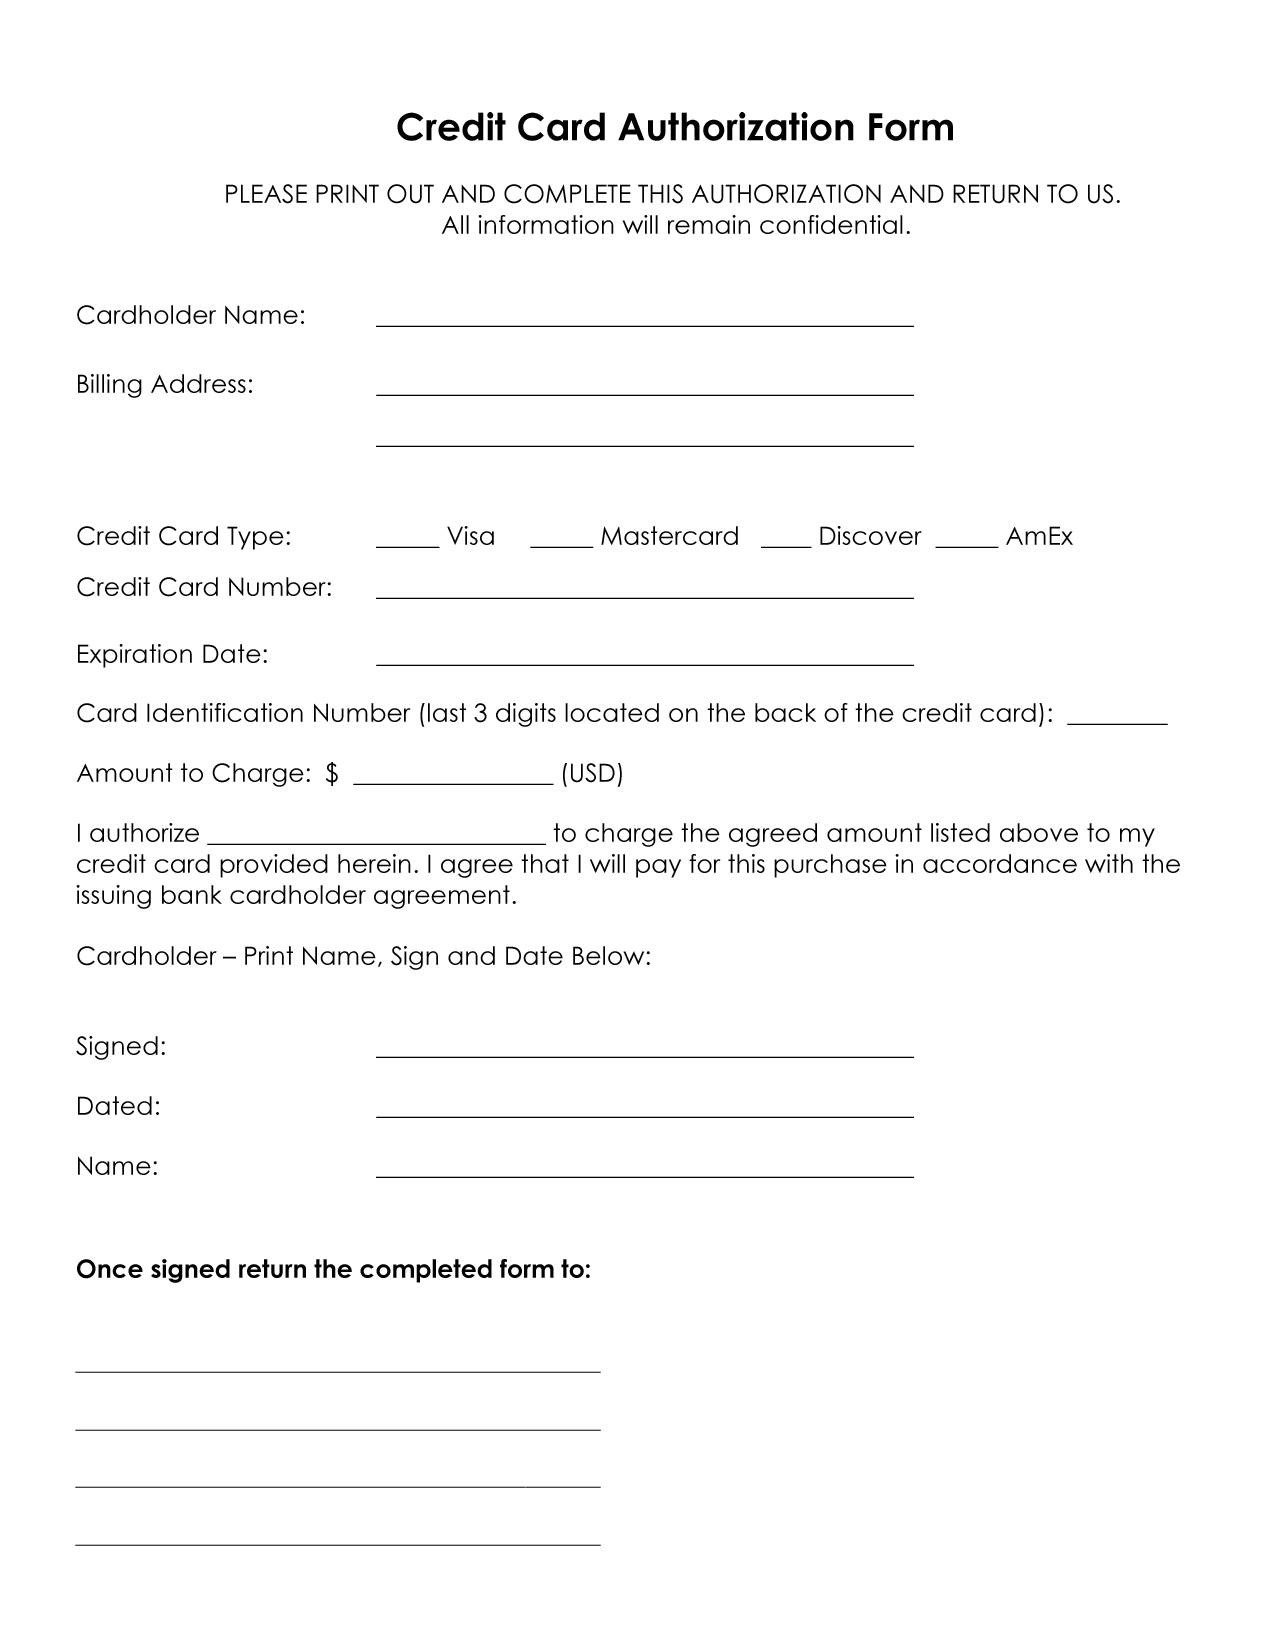 Credit Card Payment form Template 33 Credit Card Authorization form Template Download Pdf